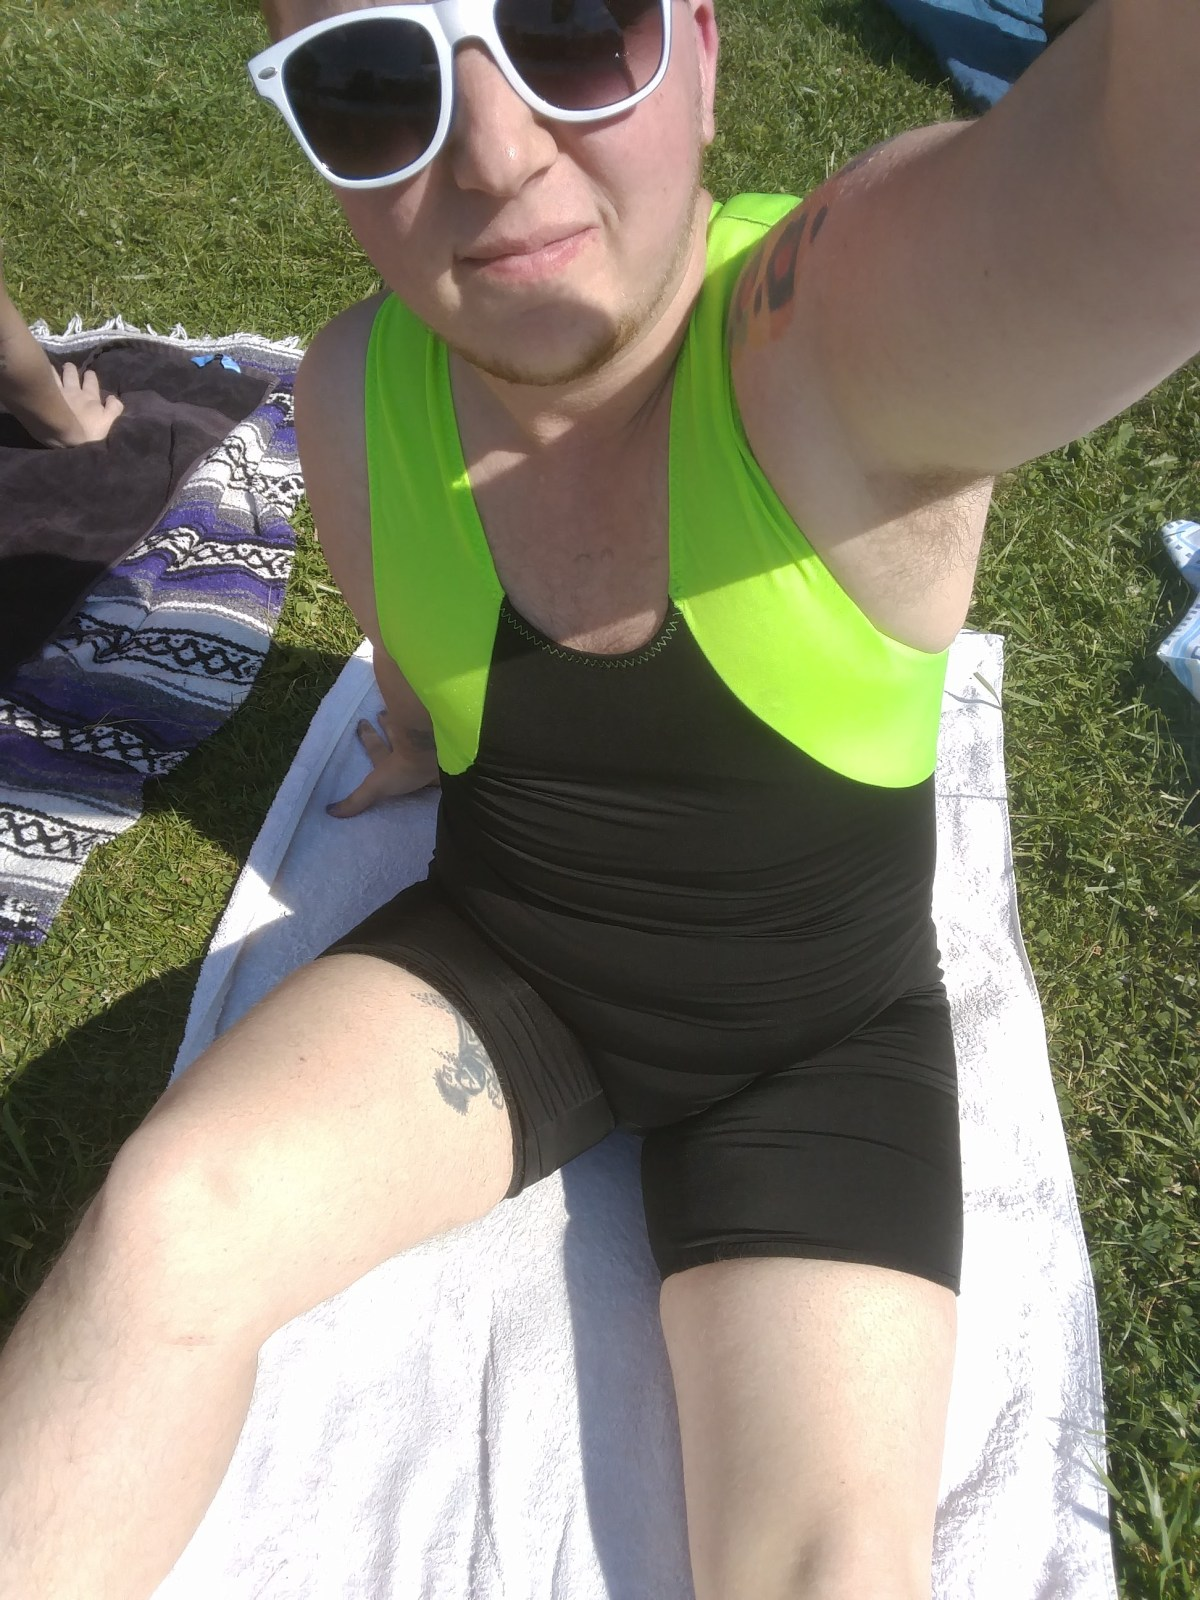 Noah in his swim-singlet at the beach. The bodice is almost entirely black, with a neon green around armscye and into the straps. Has an 80s Body Glove feel to it, paired with white raybans